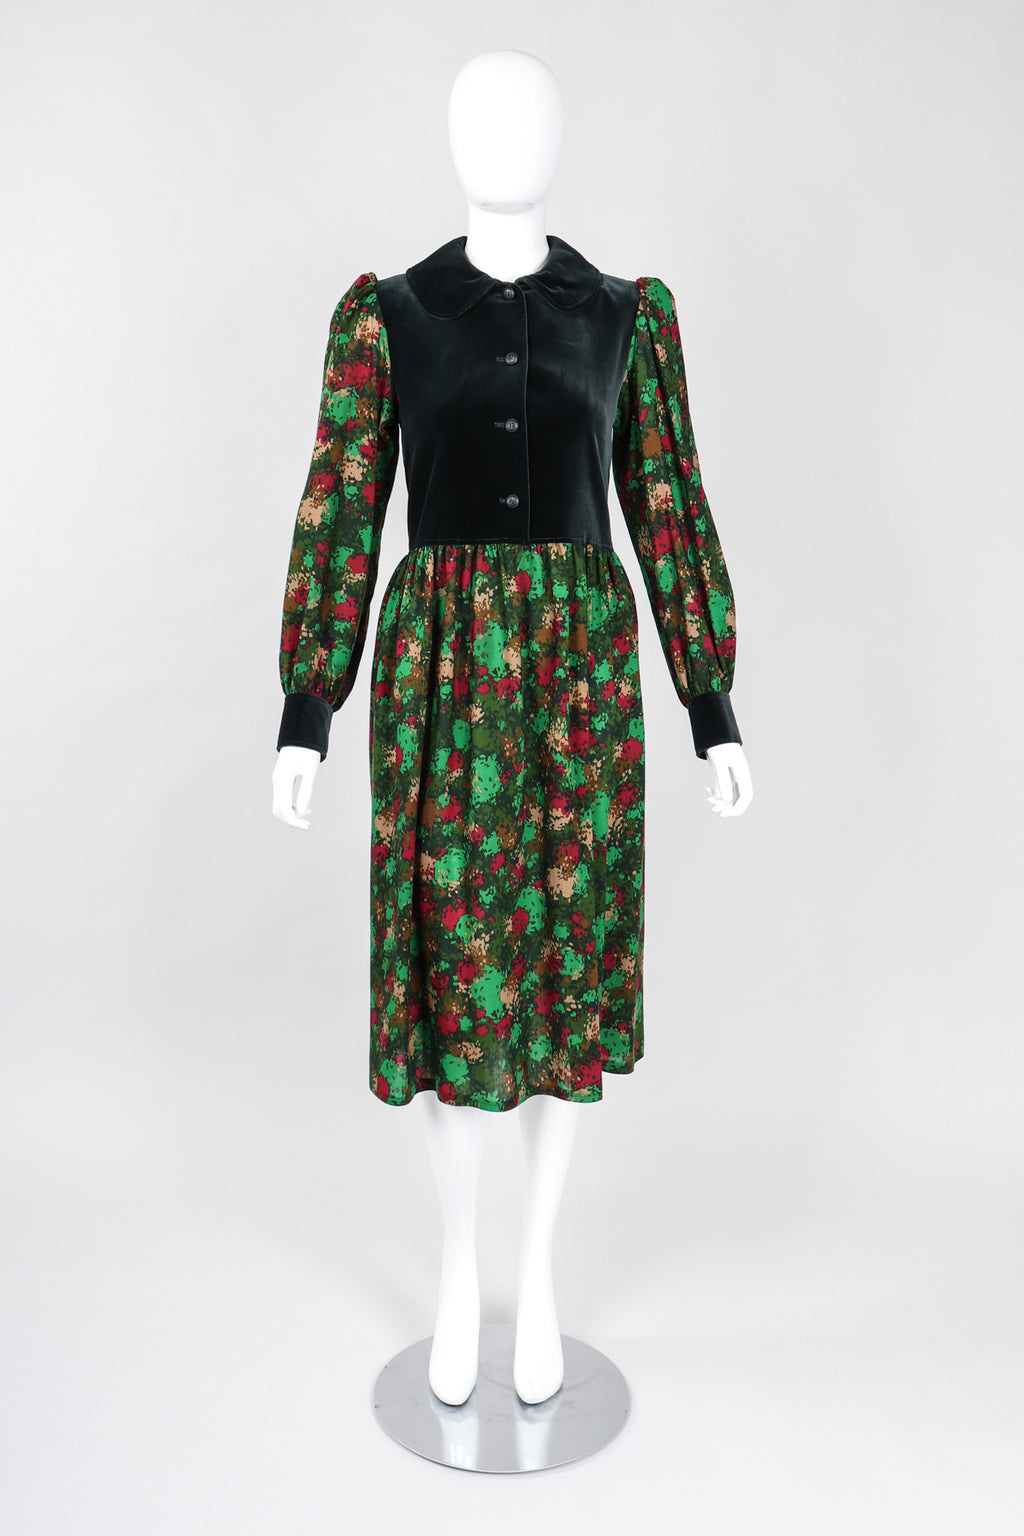 Recess Los Angeles Vintage YSL Yves Saint Laurent Russian Collection Velvet Bodice Camo Print Peter Pan Collar Folk Dress